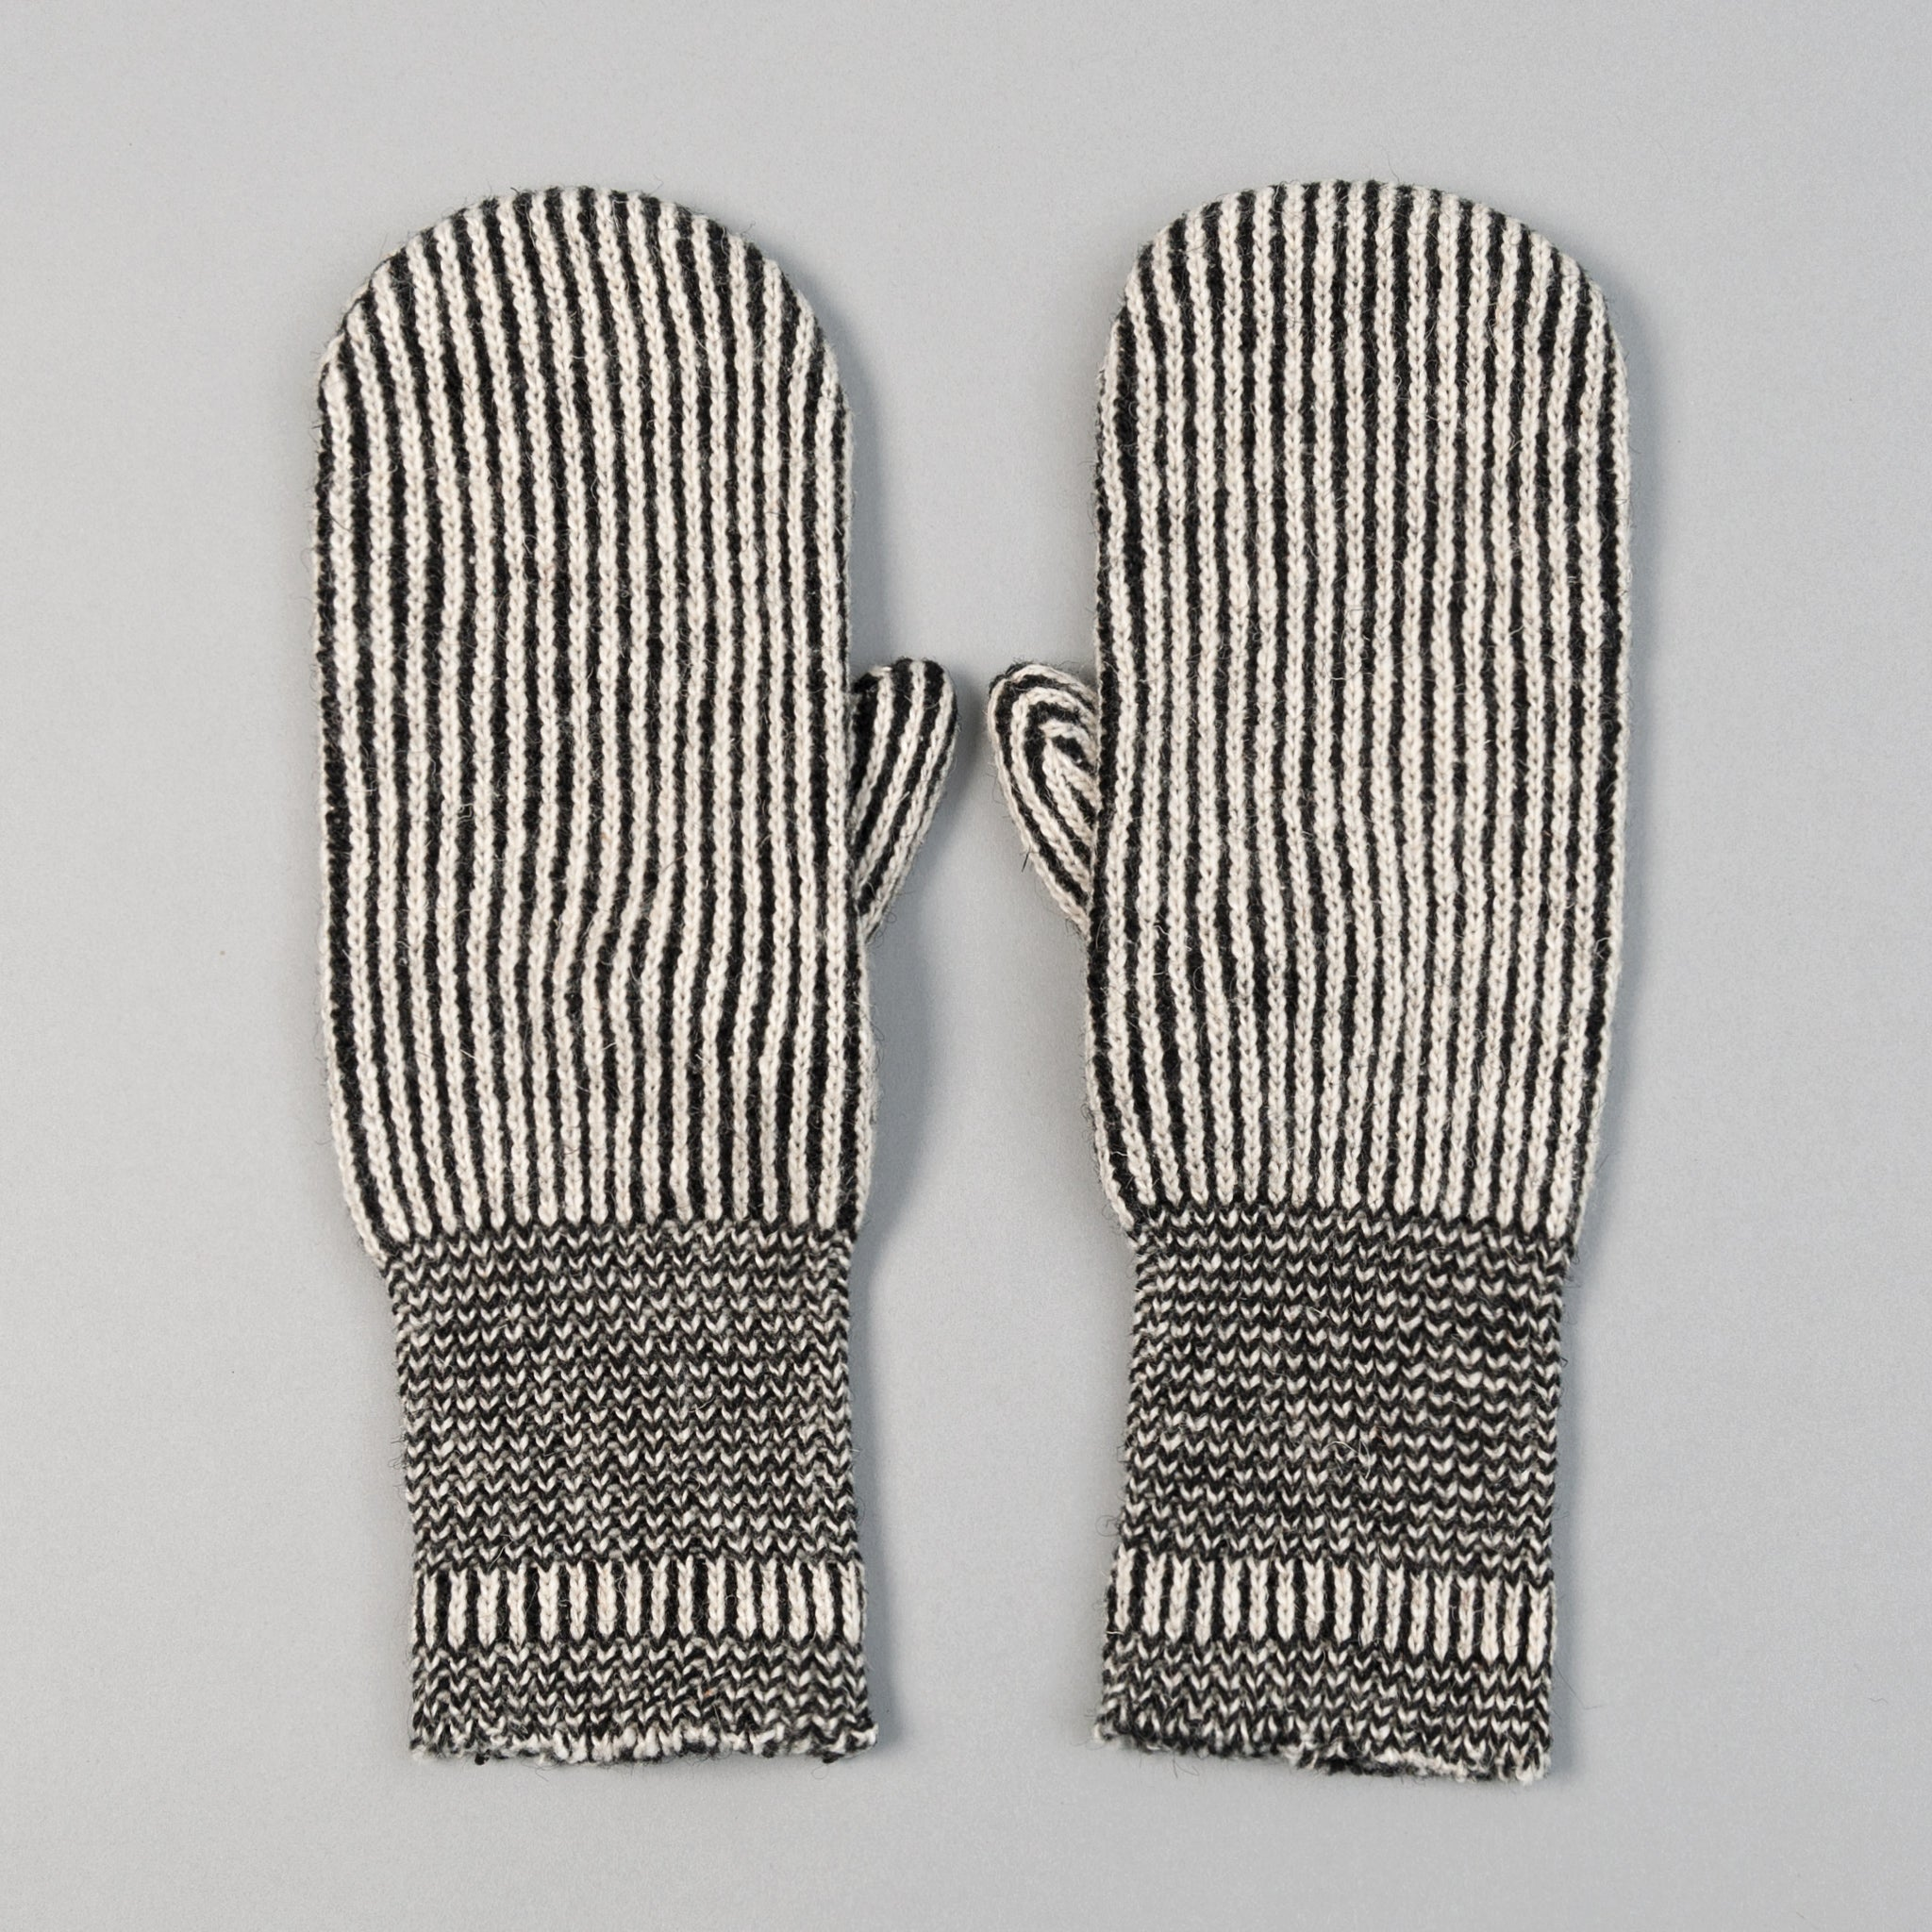 Fox River - Striped Wool Mittens, Black & White - image 1